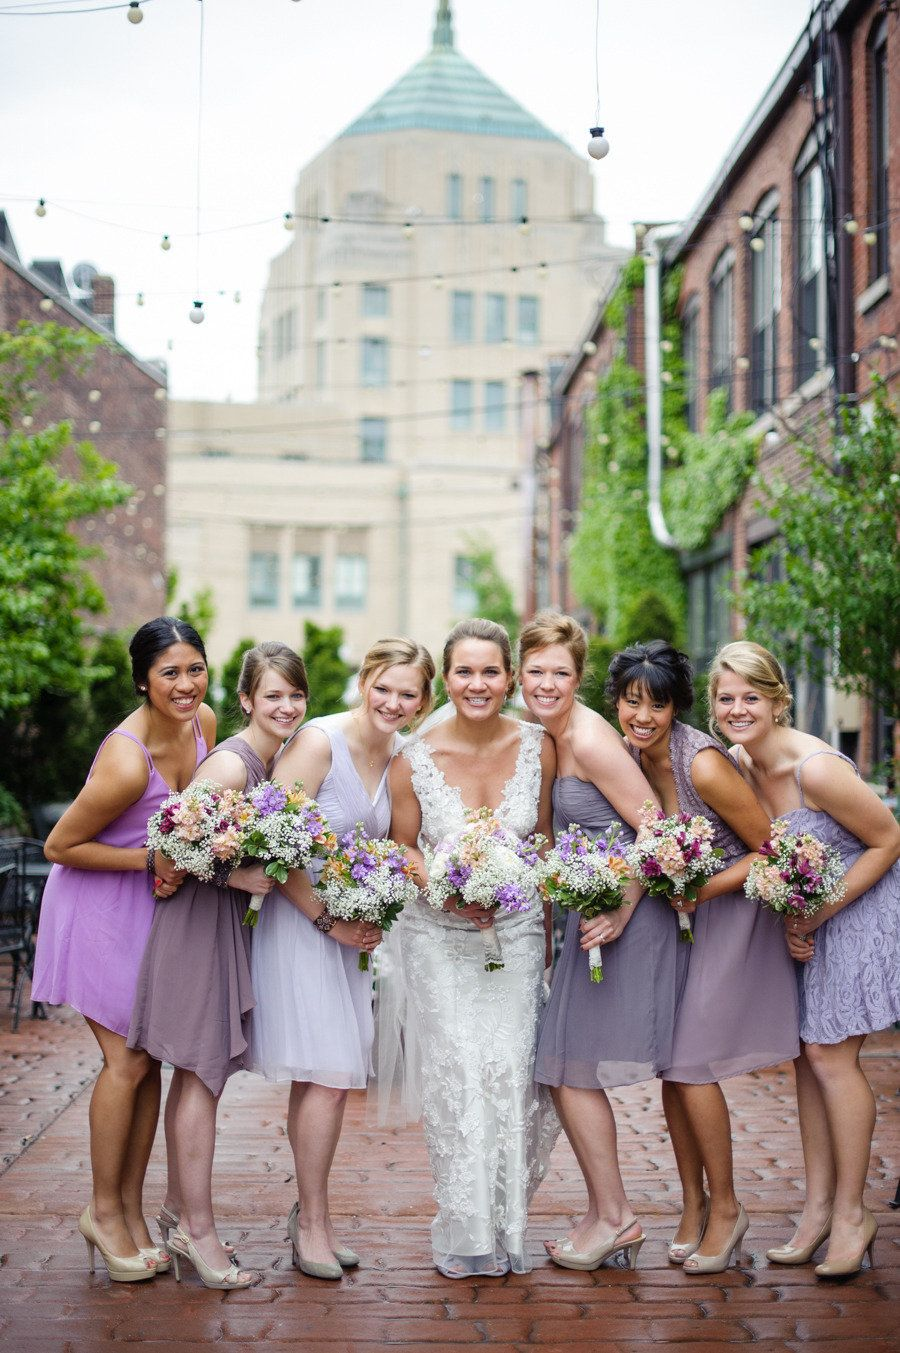 A downtown champaign illinois wedding from jasmine nicole a downtown champaign illinois wedding from jasmine nicole photography ombrellifo Choice Image